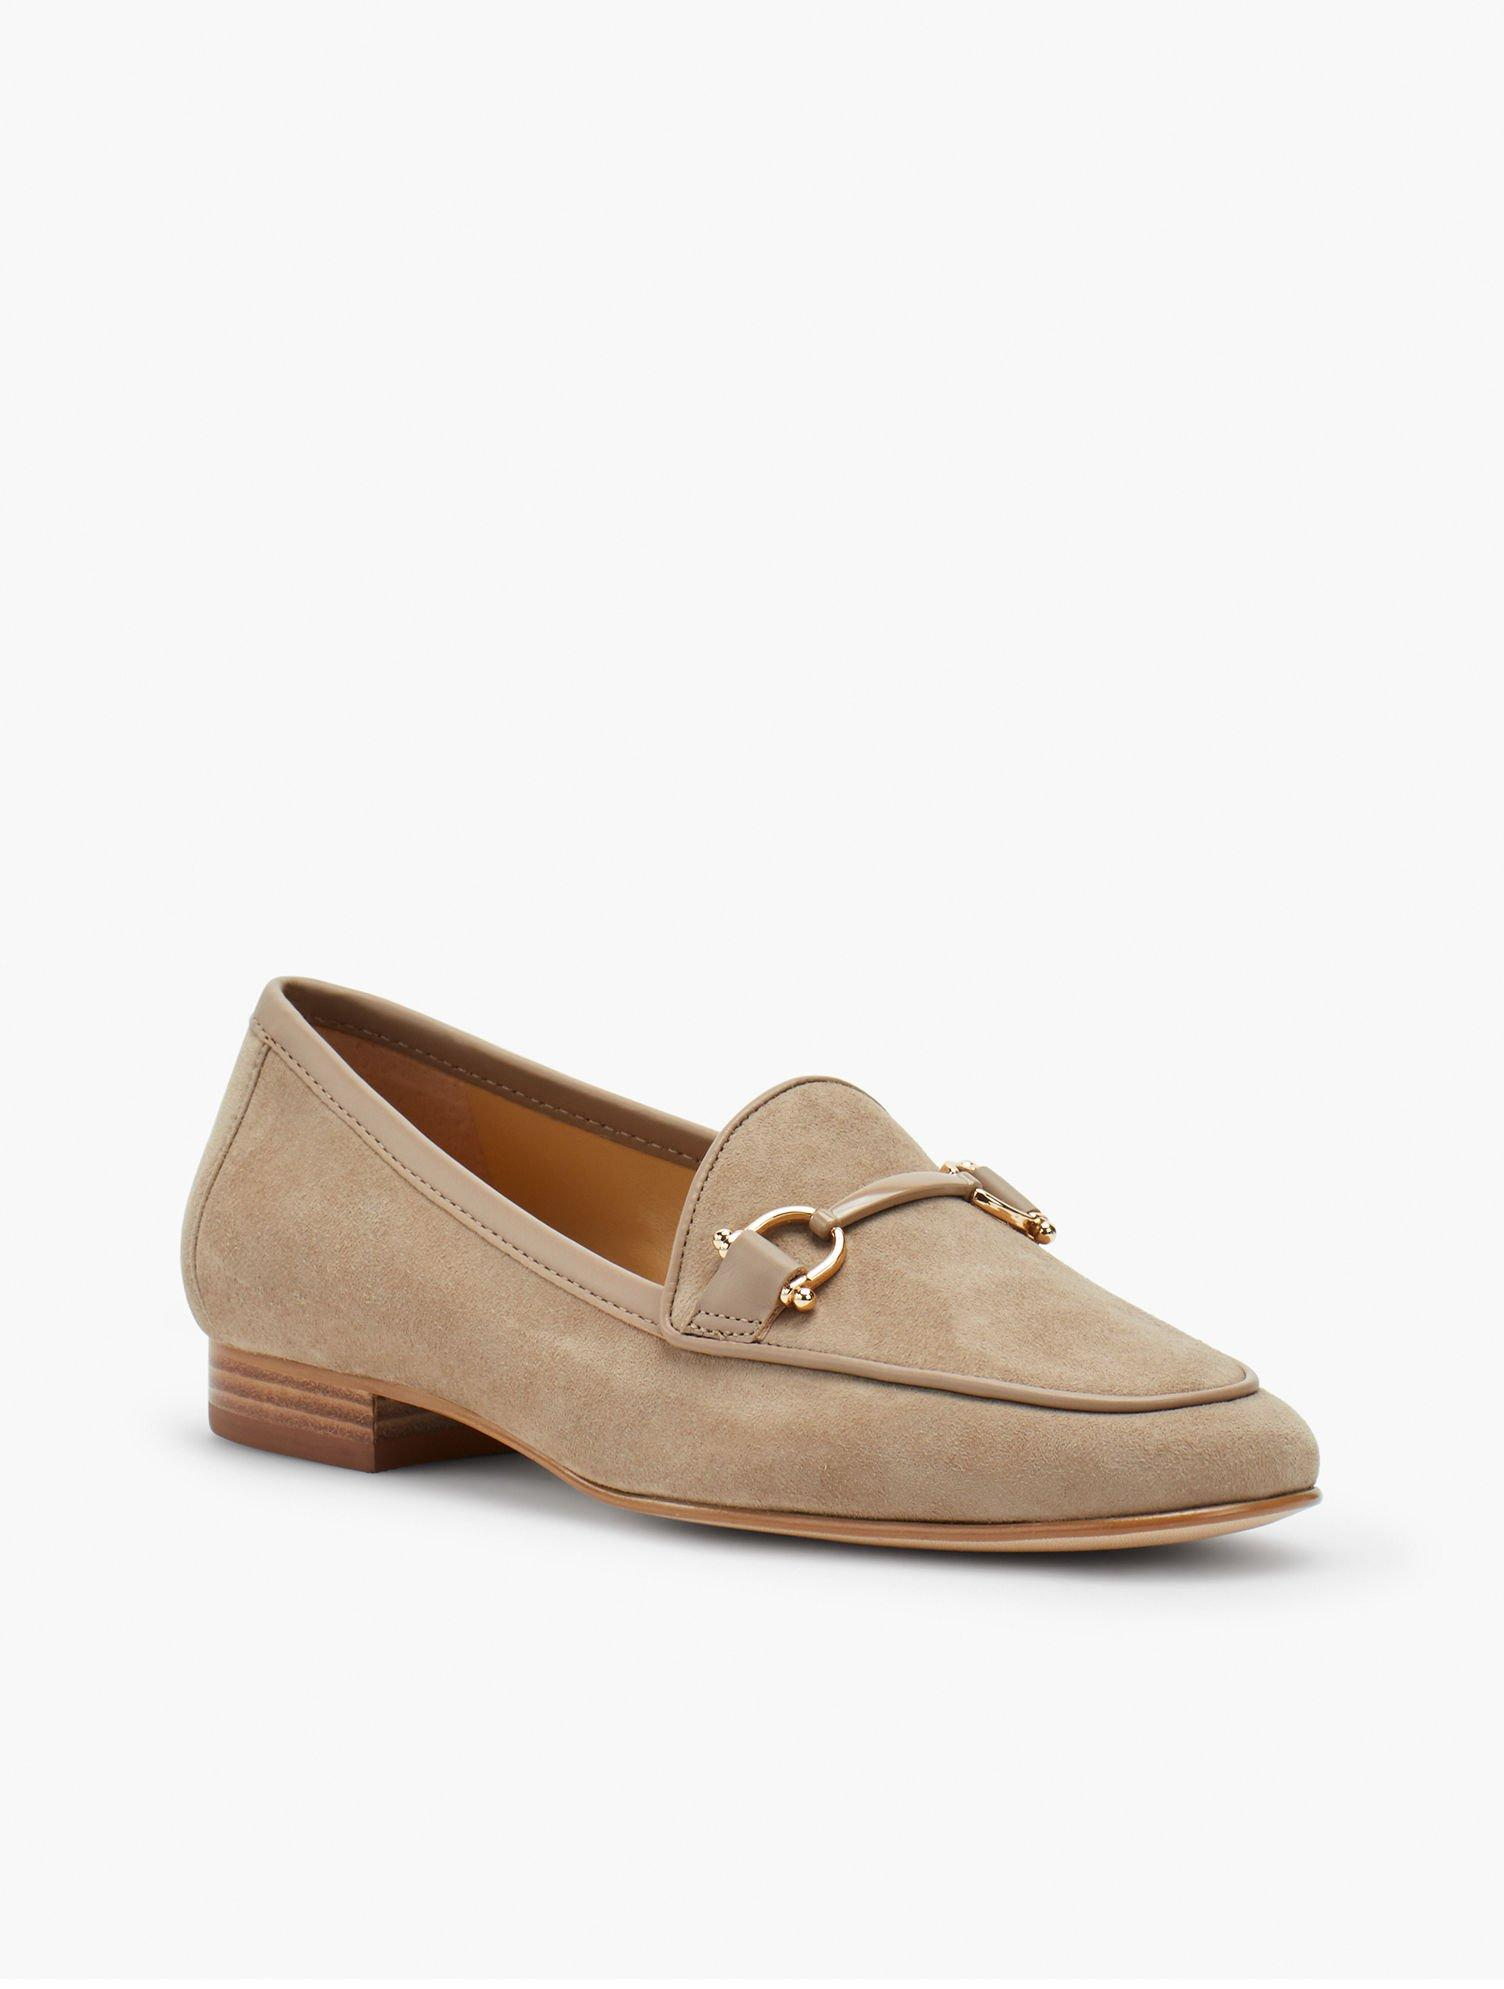 f8e5cf5f906 Lyst - Talbots Cassidy Kid Suede Loafers